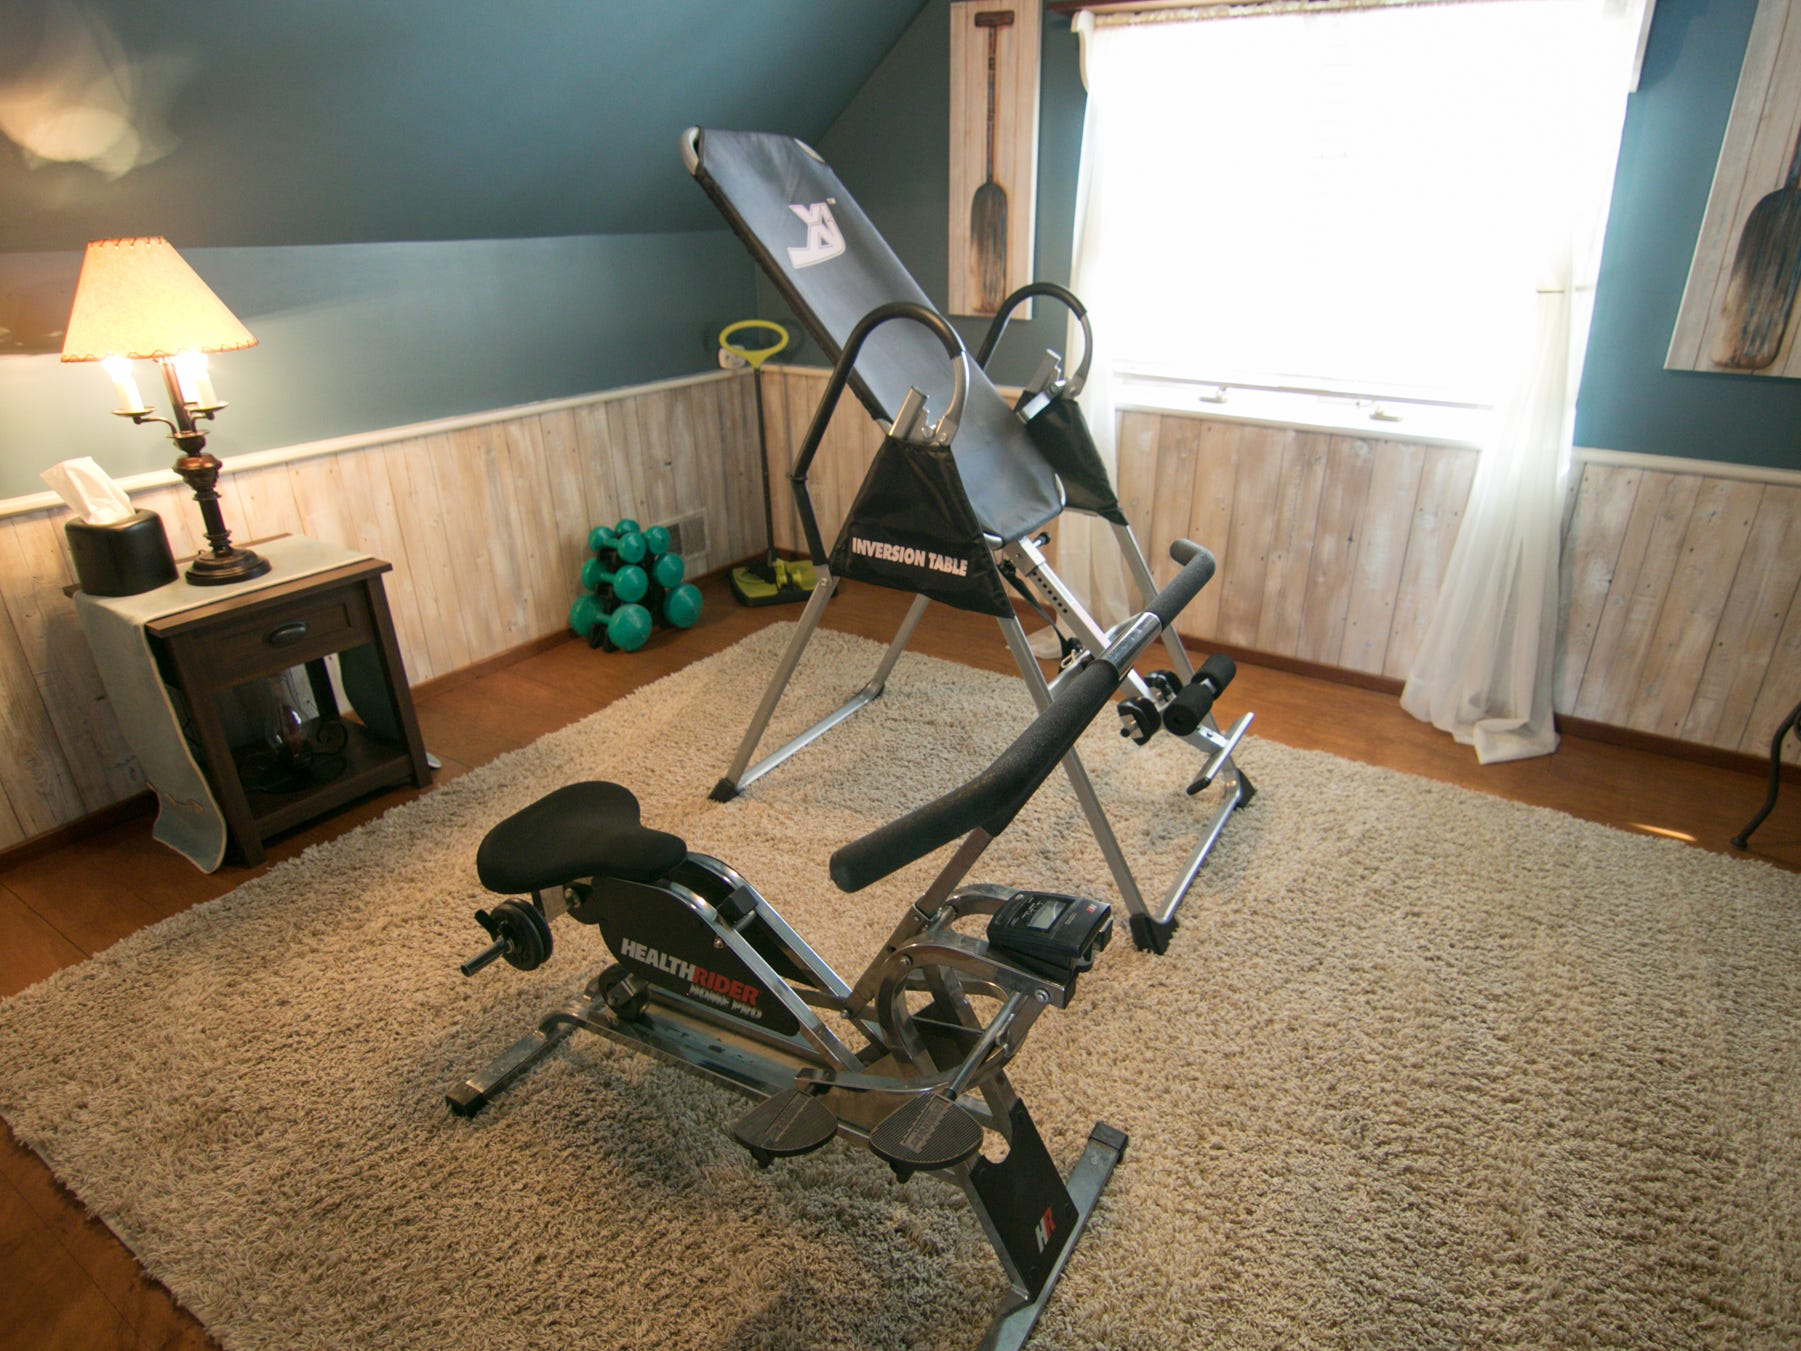 A spare bedroom serves as an exercise room in the Olmsted home, shown Thursday, March 7, 2019.